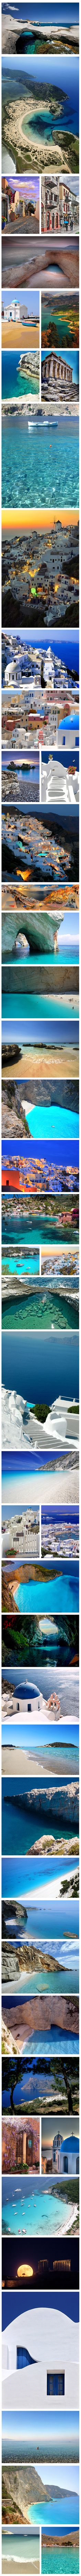 Greece - I want to go!